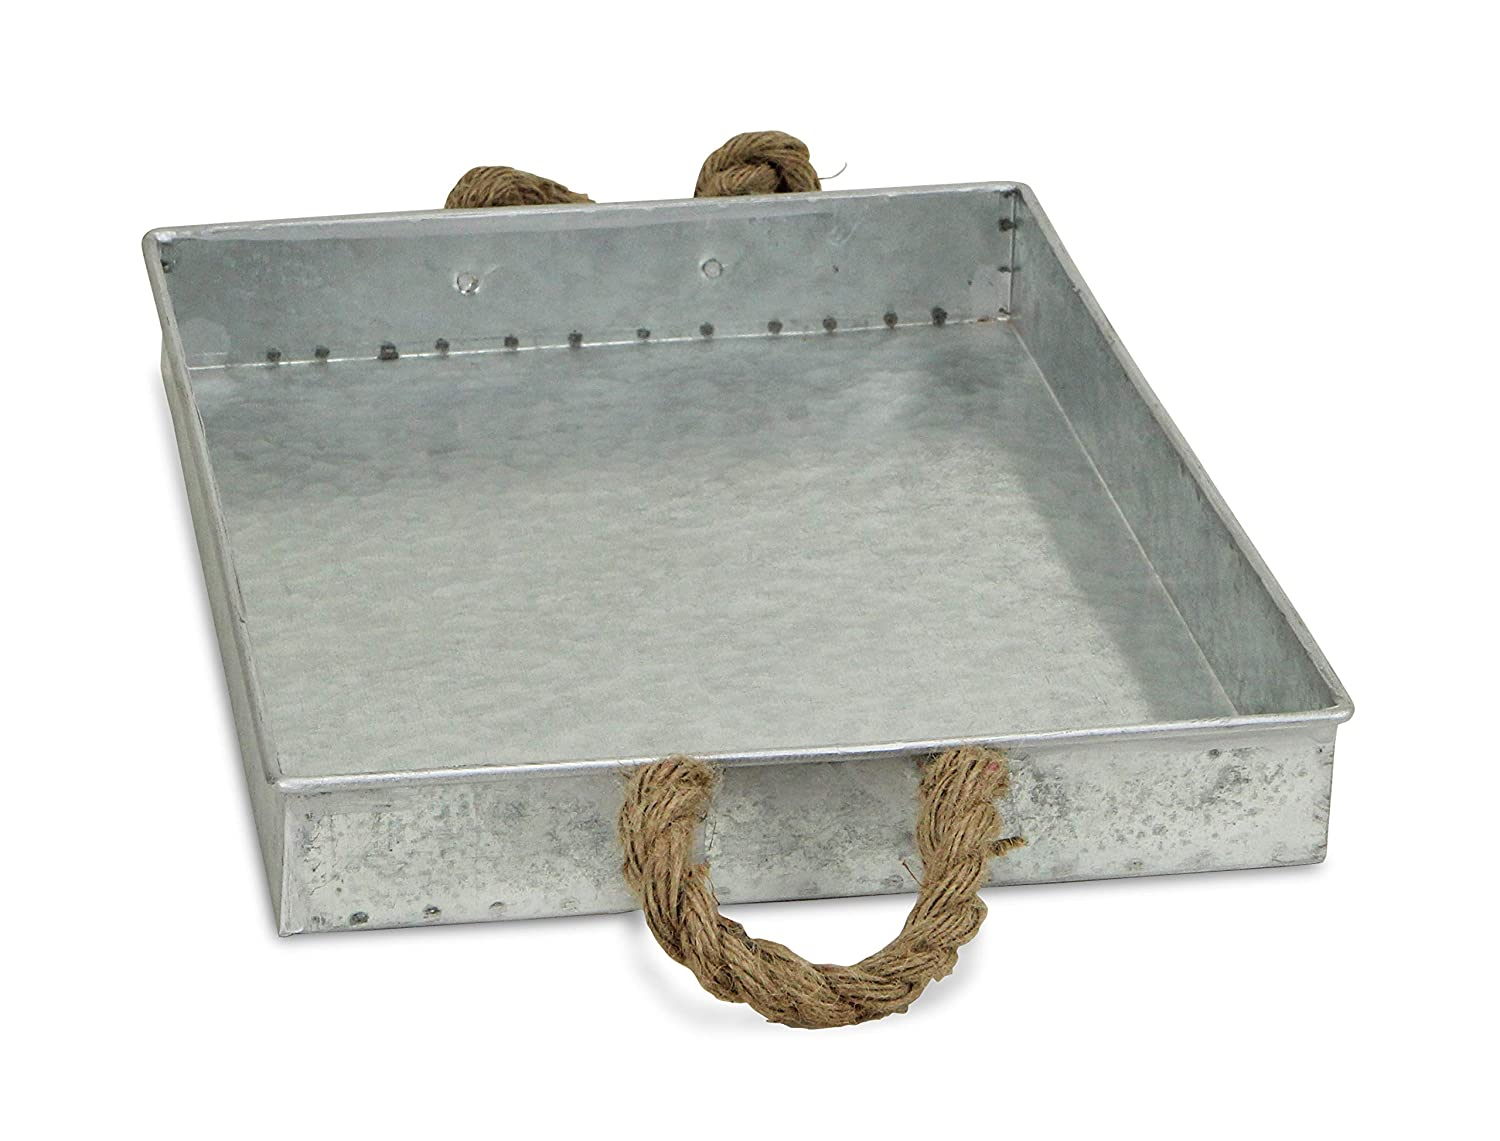 Amazon.com: De Cheung fp-3744 Bandeja rectangular de metal ...